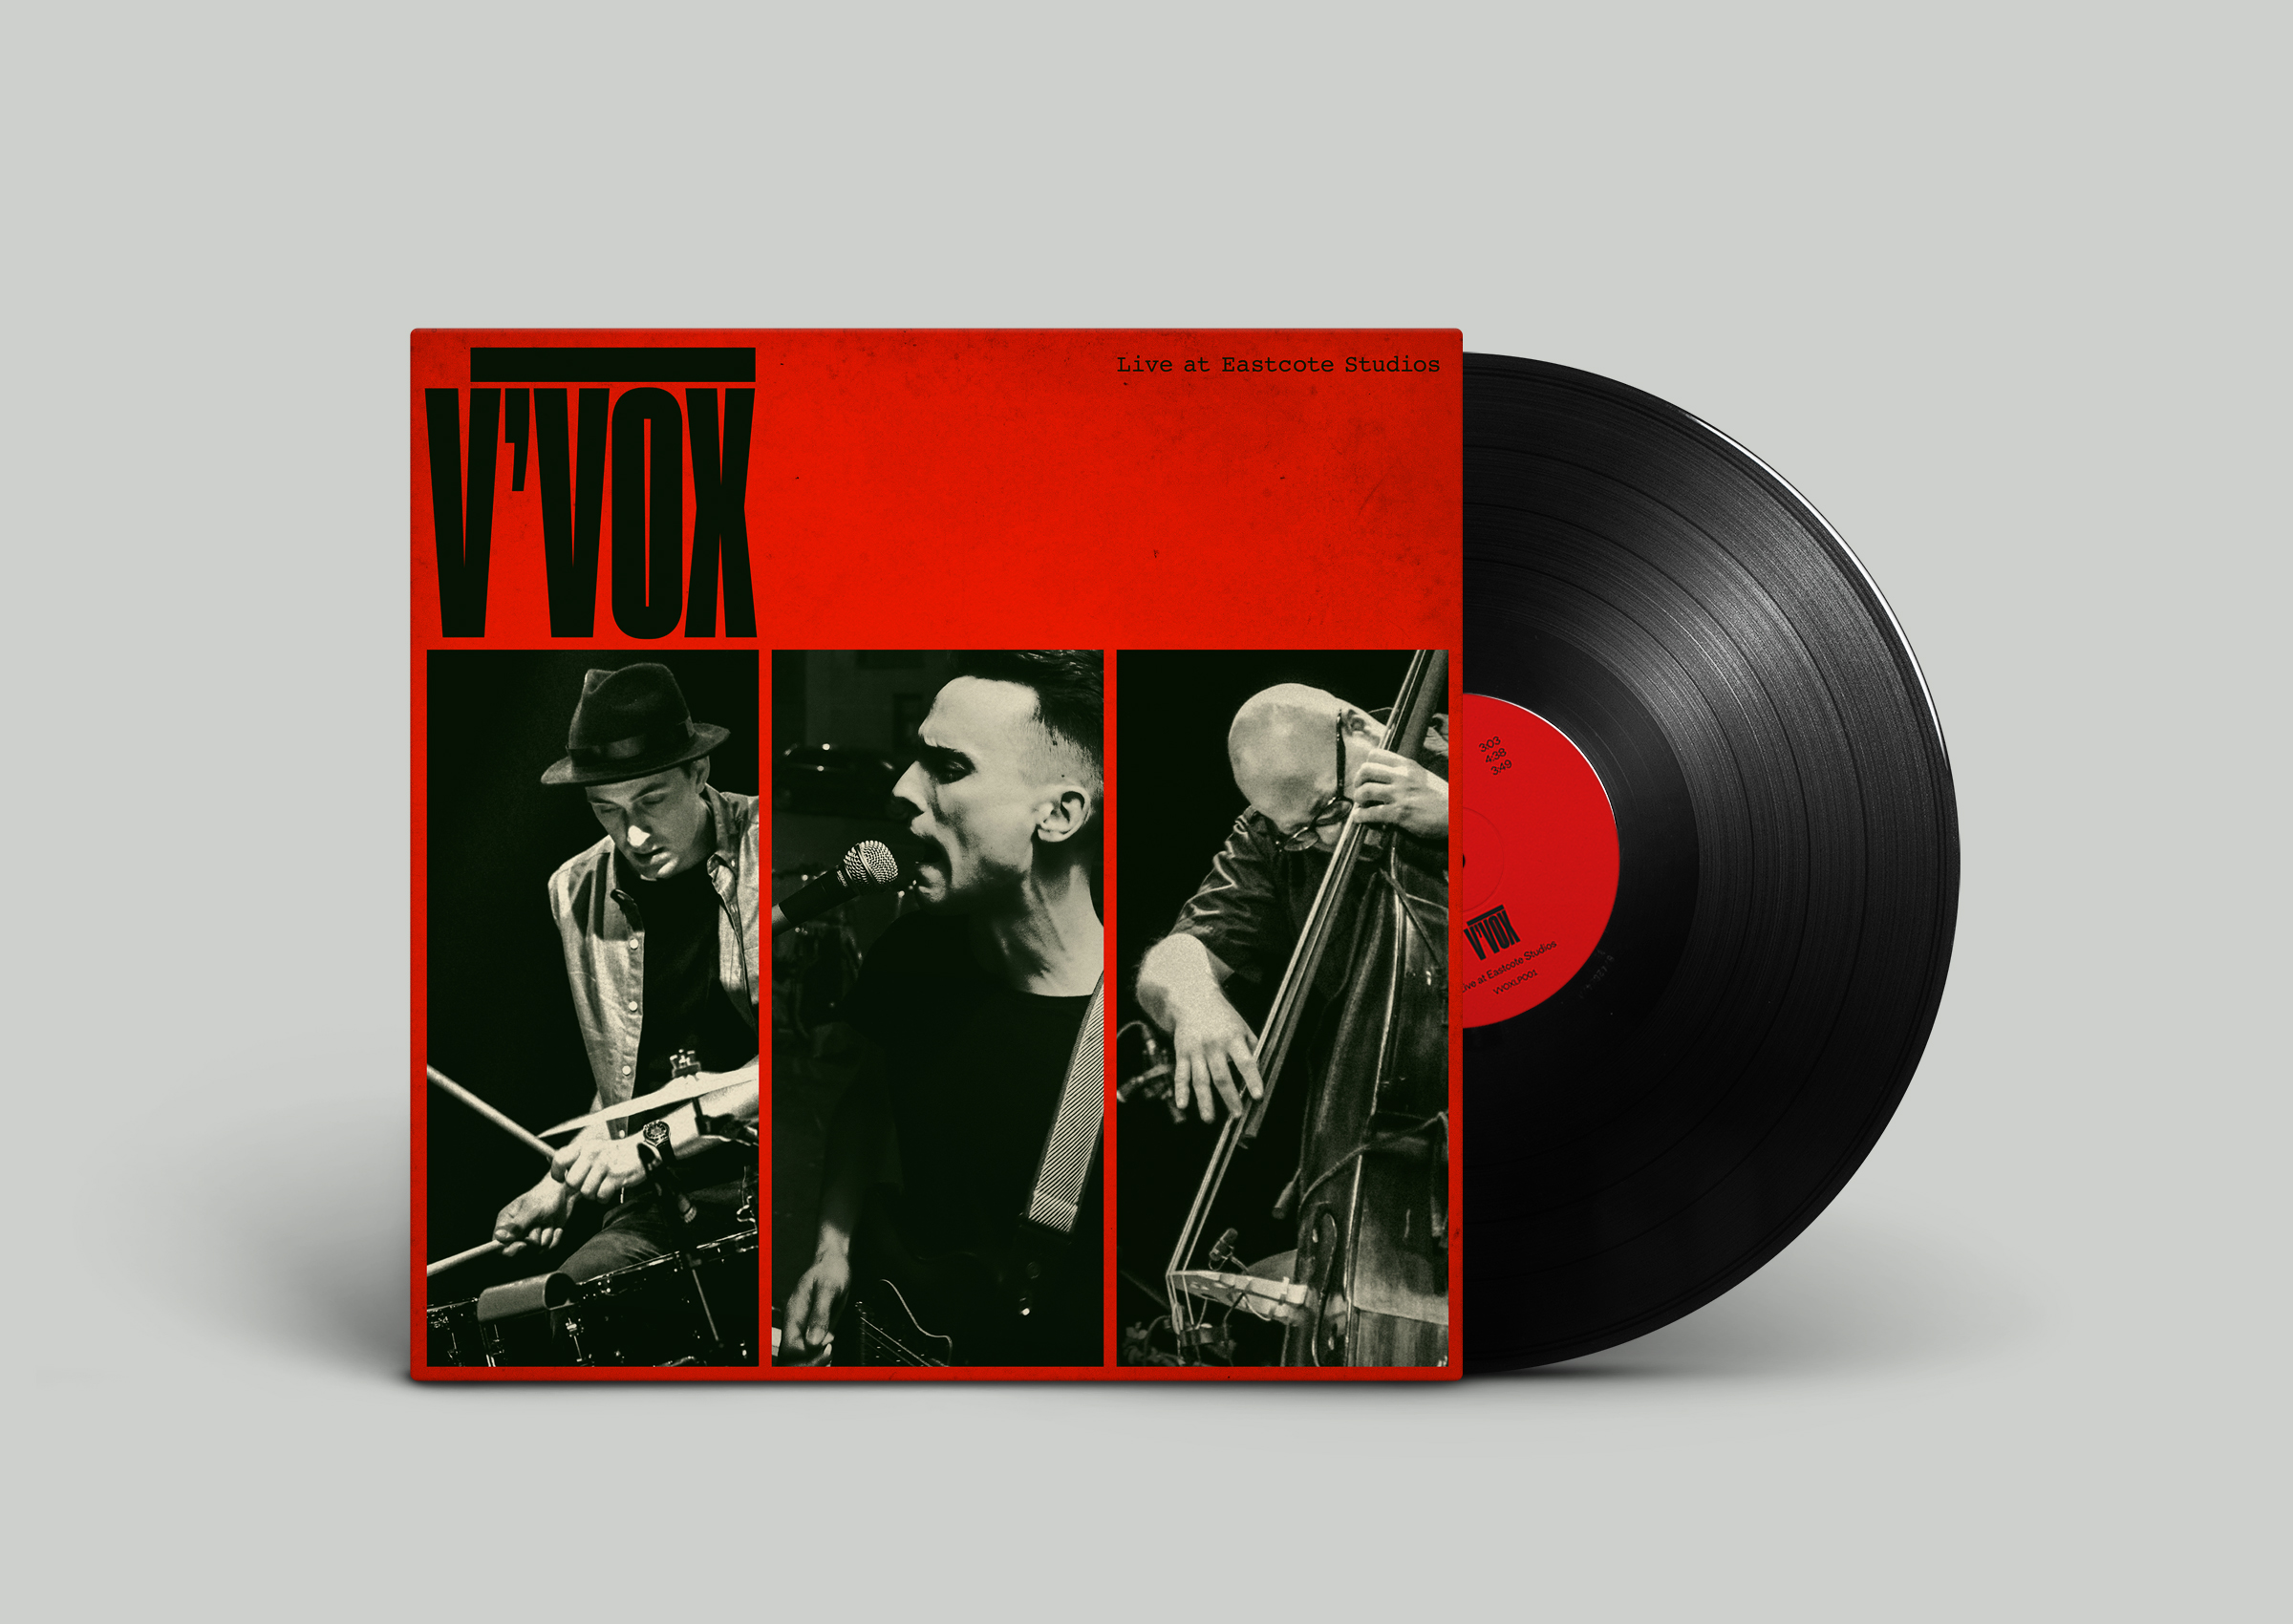 V'VOX Live at EastCote Studios - 12'' vinyl available in our store